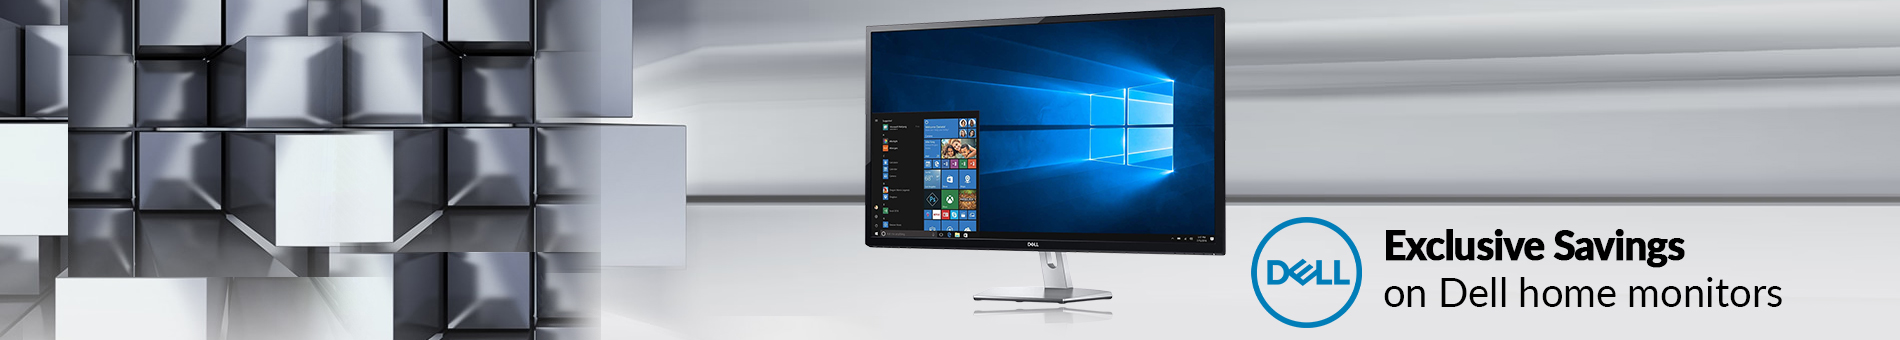 Dell Home Monitors Exclusive Savings  Banner 01